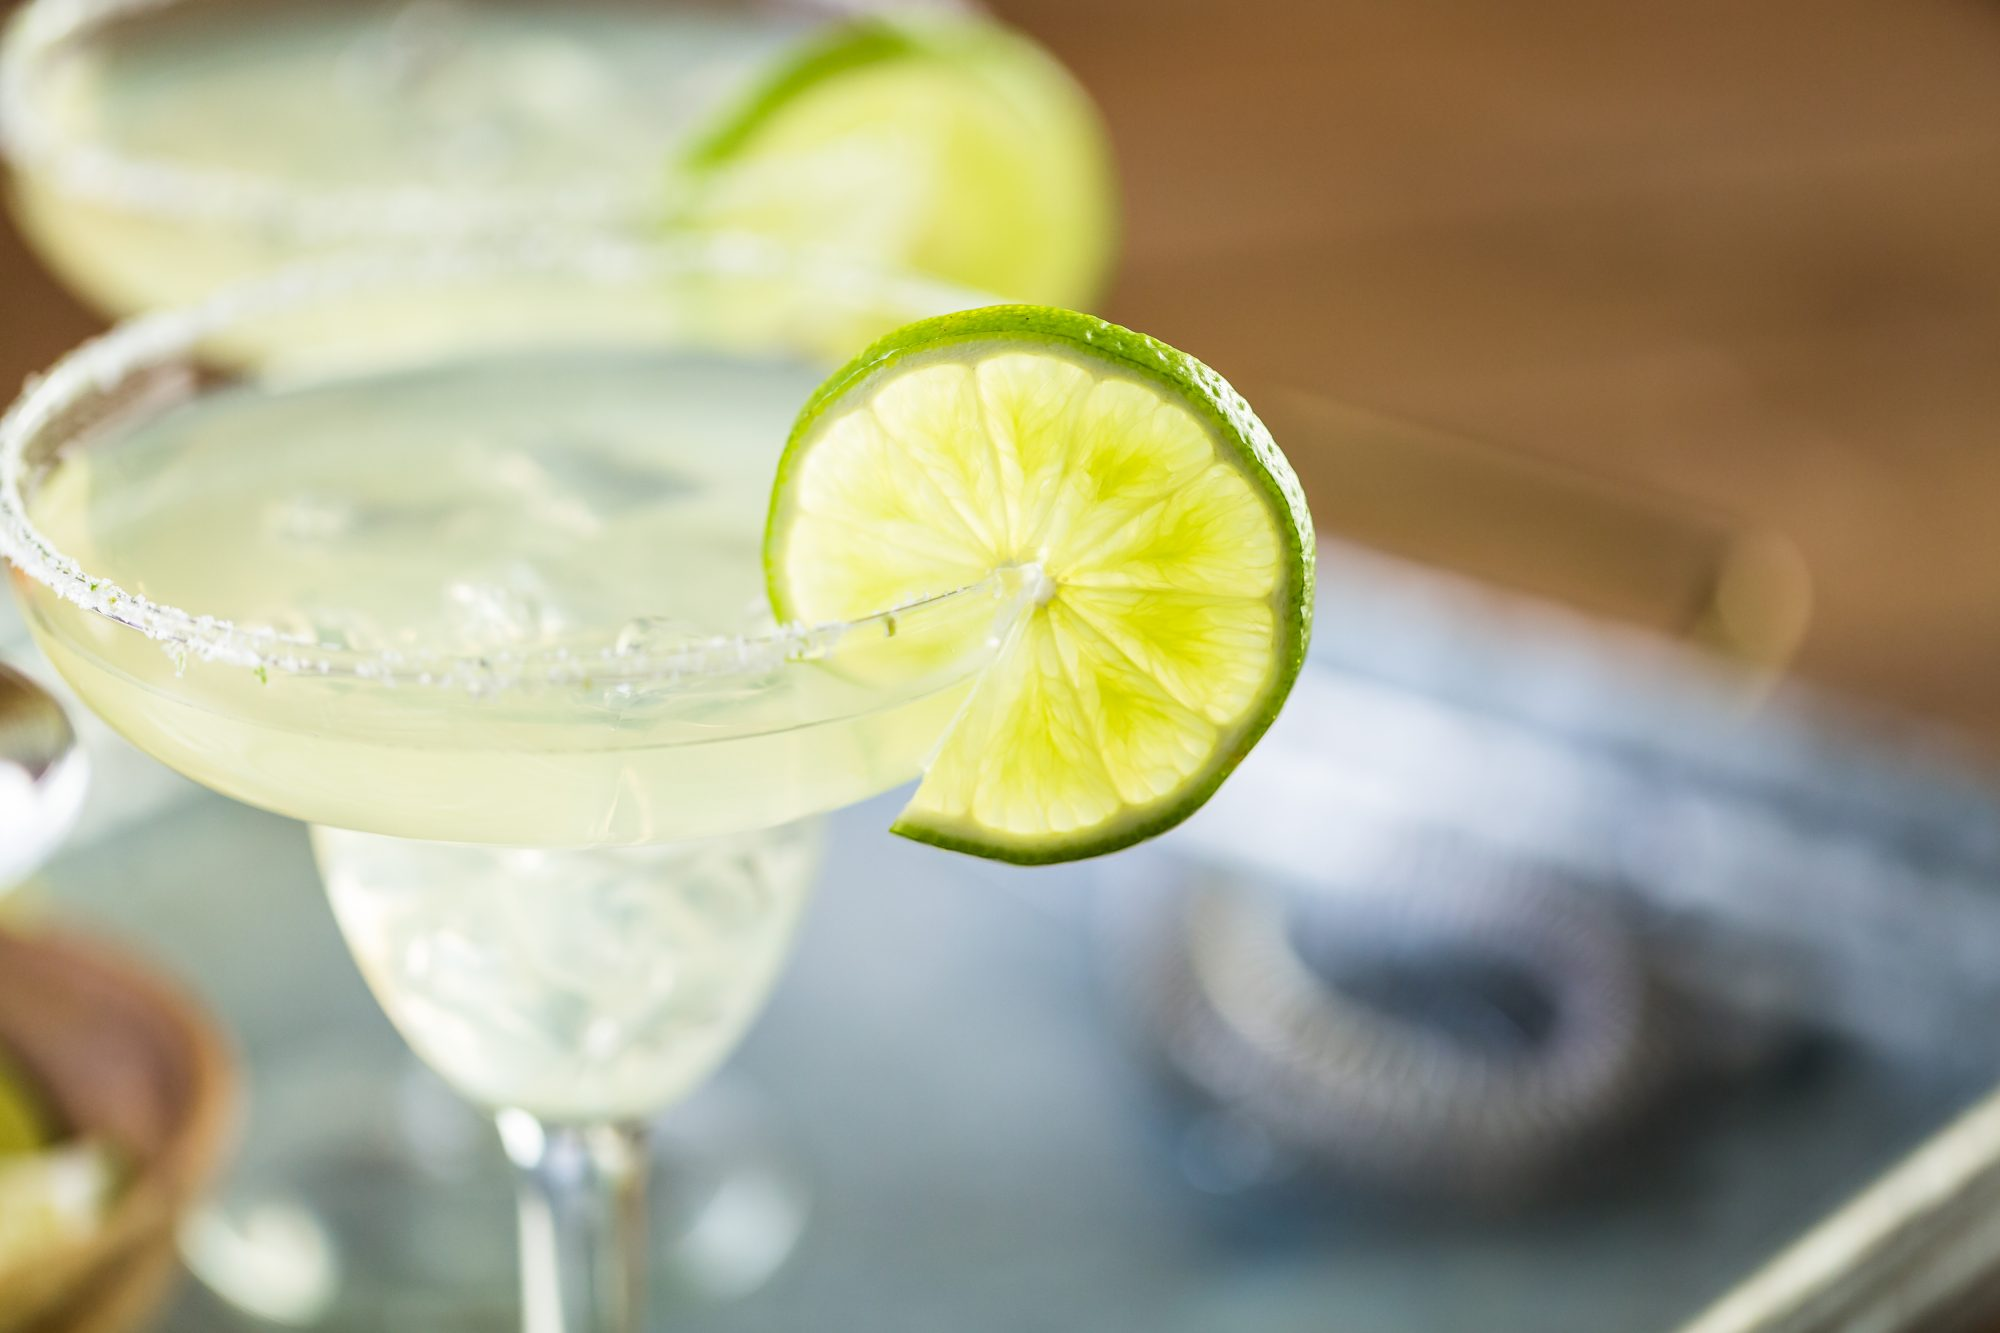 Key lime margarita garnished with fresh lime